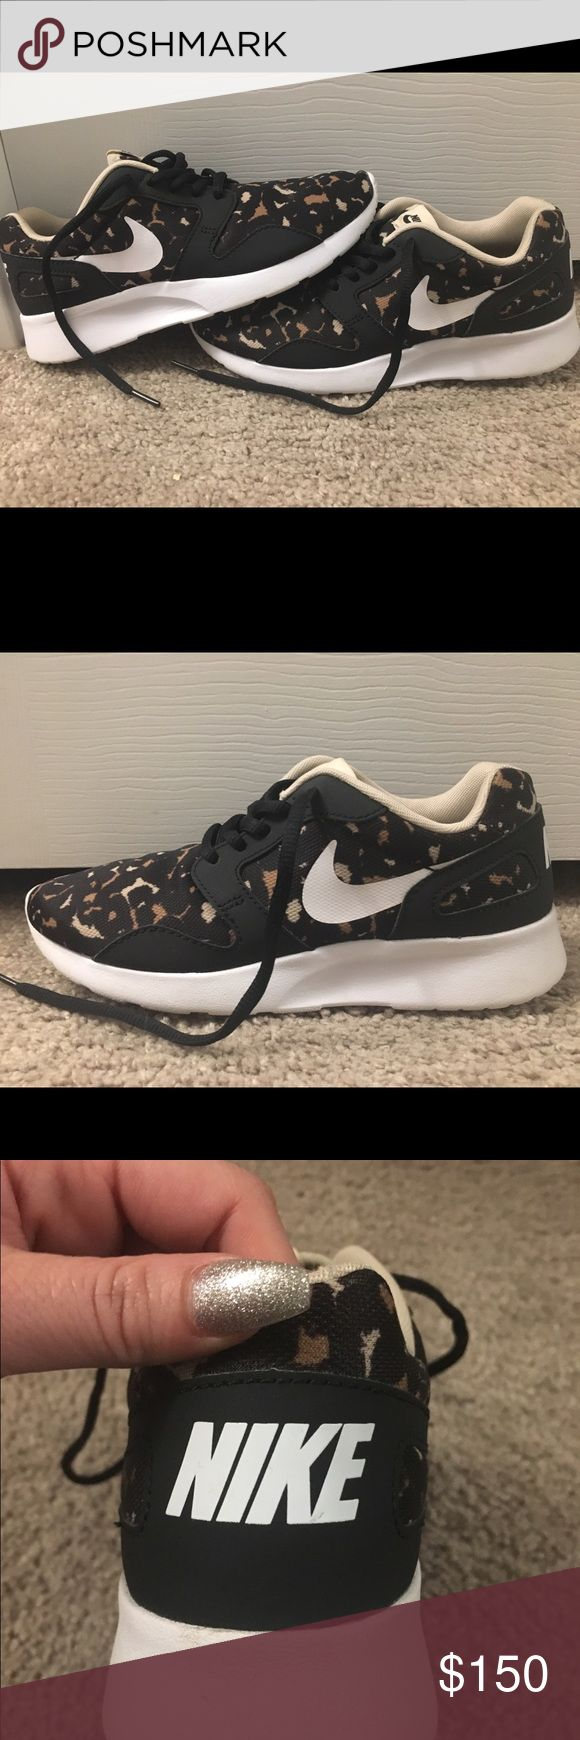 Womens Nike Leopard Running Sneakers Size 6.5 Rare Leopard Nike Running shoes. Womens 6.5 only worn a handful of times to the gym. Excellent condition Nike Shoes Sneakers